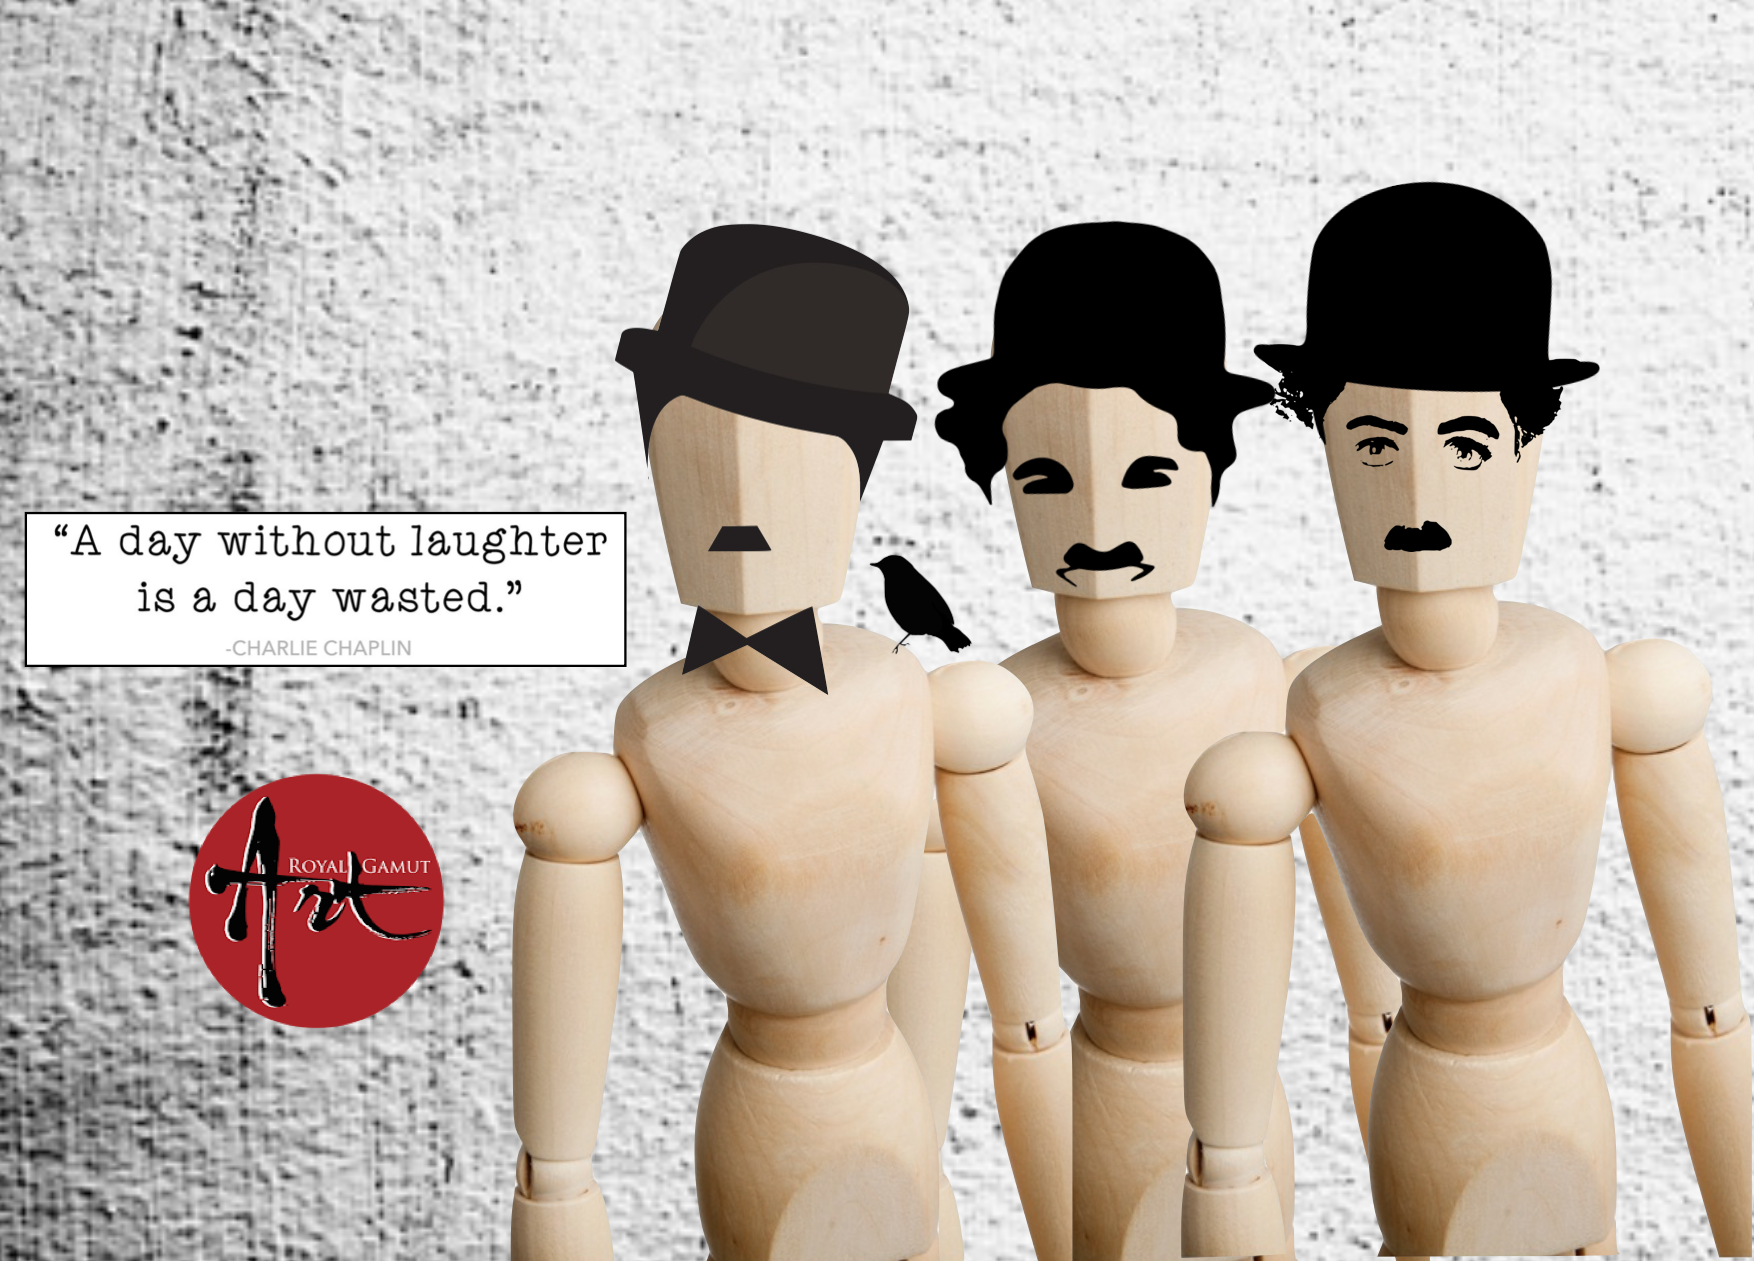 Charlie Chaplin quote A Day withour Laughter is a day wasted.